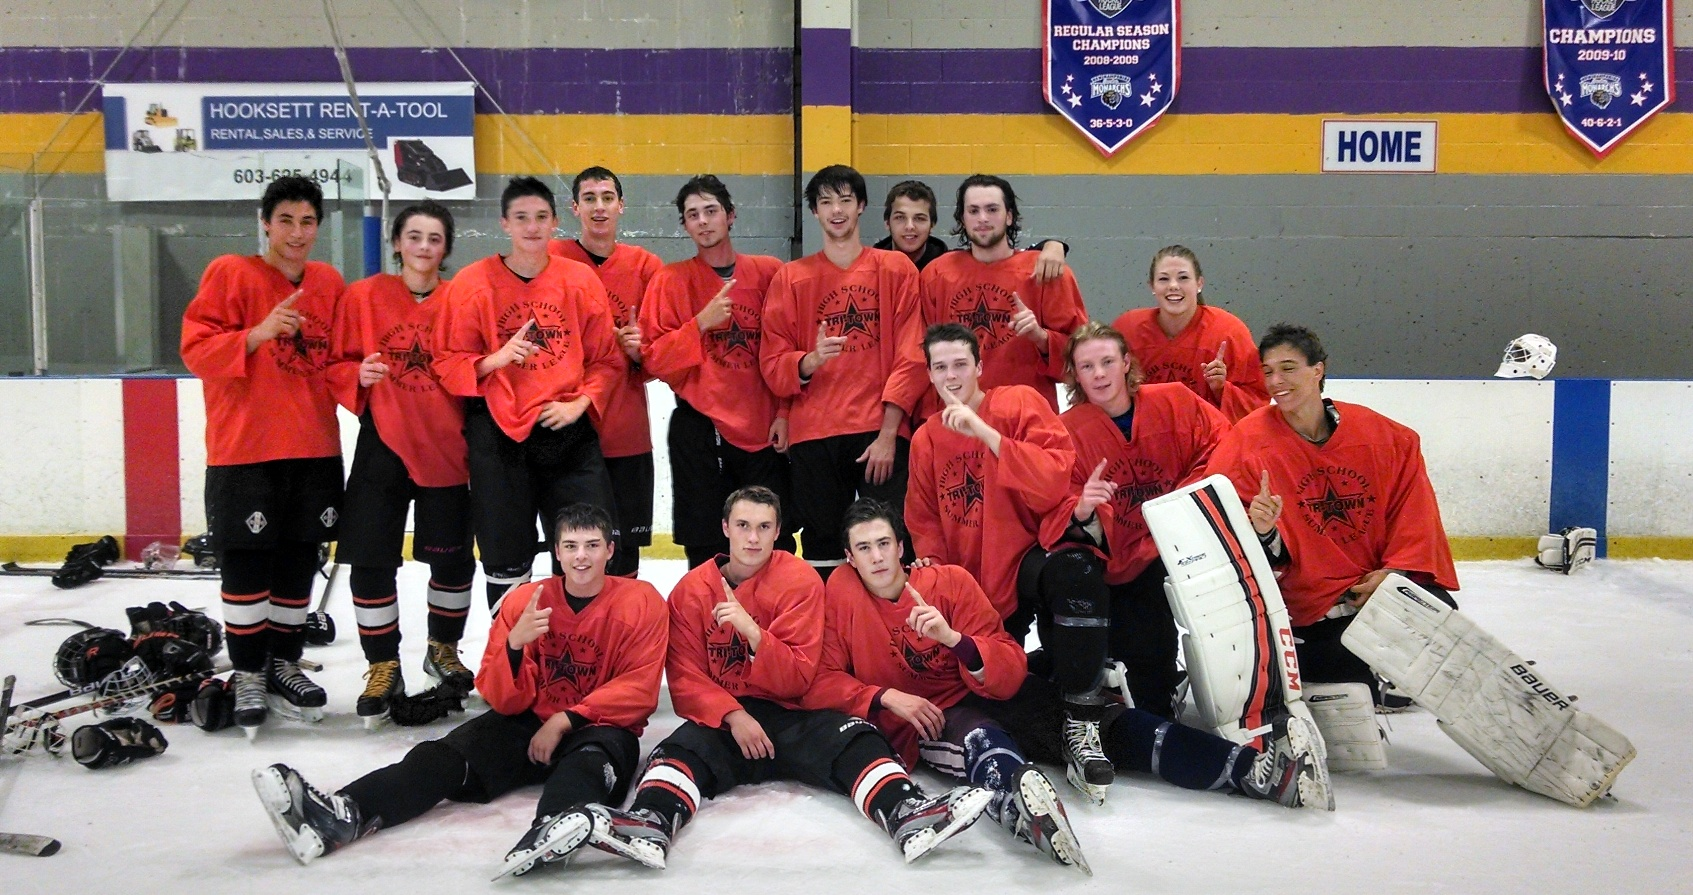 After four summers of high school boys hockey in Hooksett, New Hampshire, a championship win